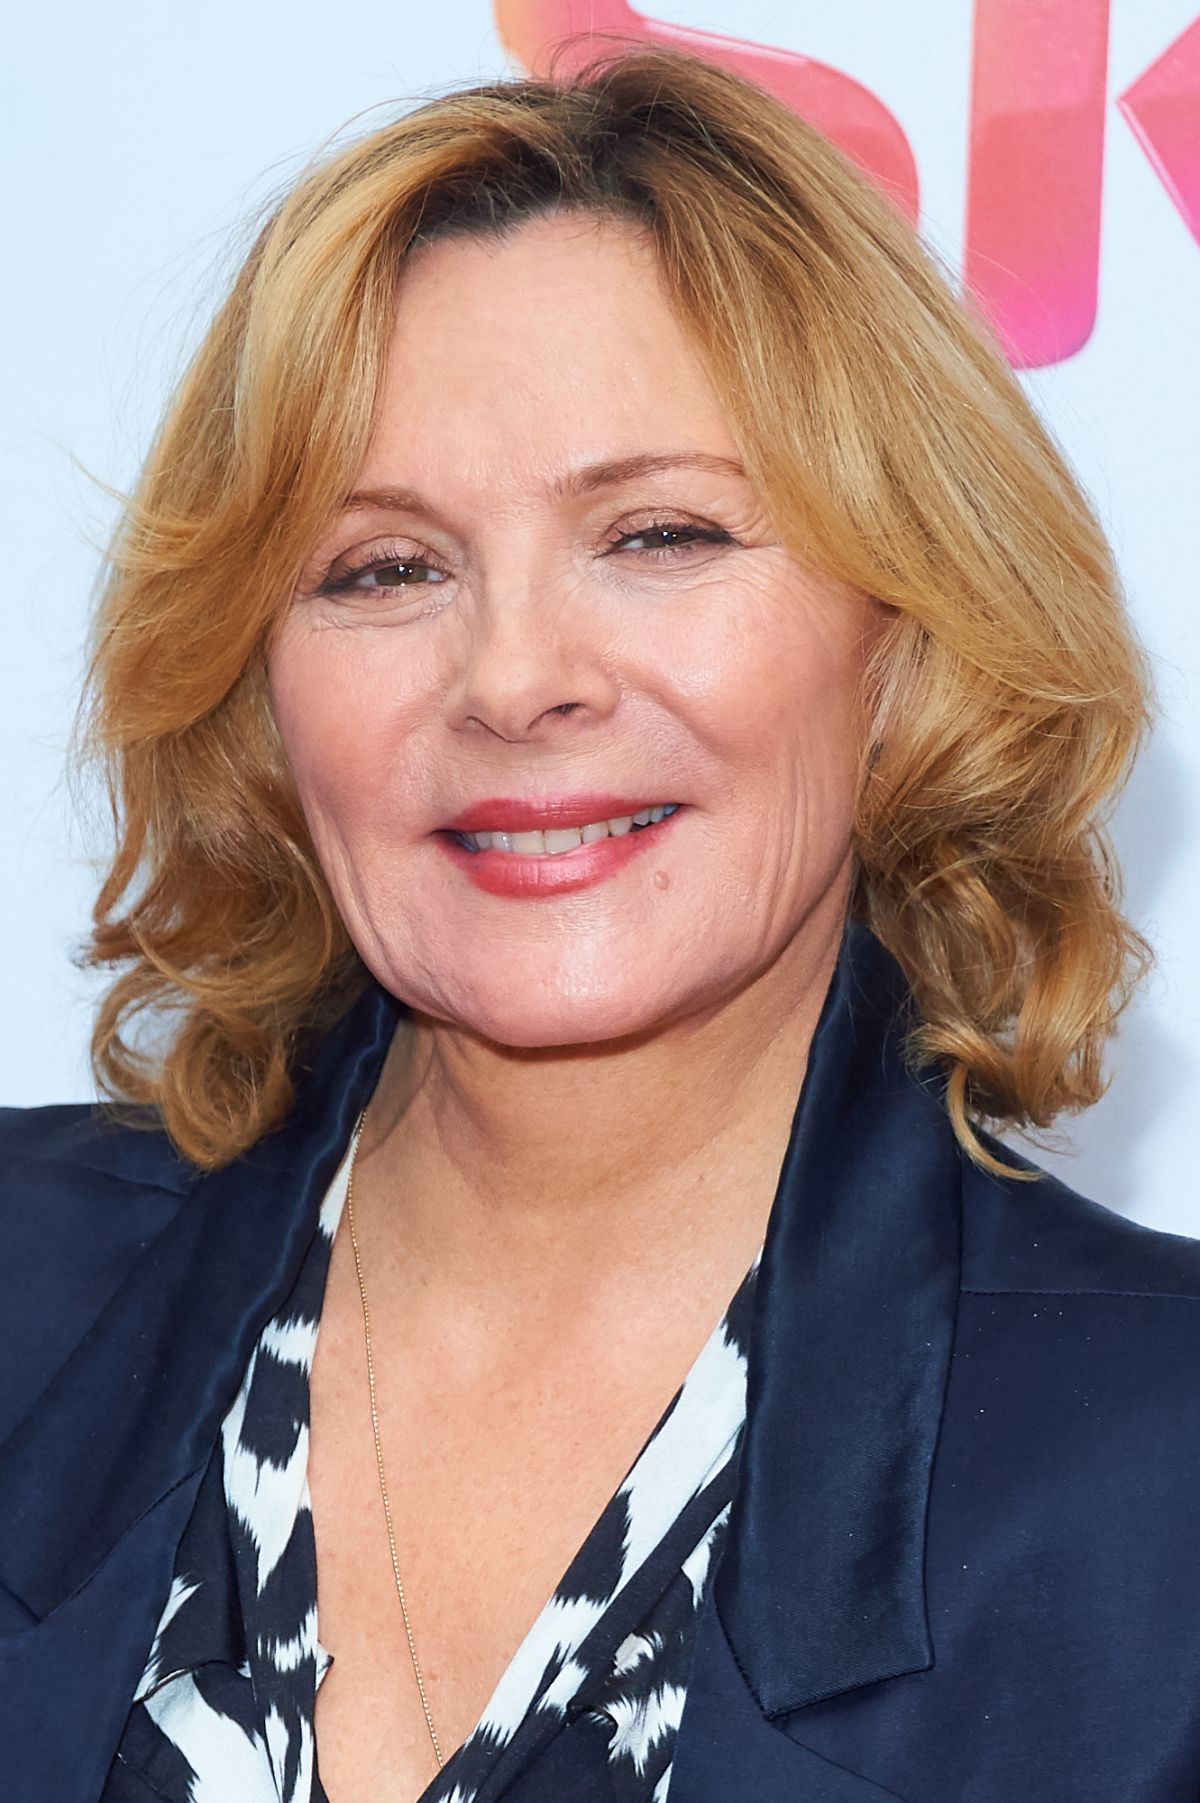 KIM CATTRALL at Sky Women in Film and TV Awards in London ...